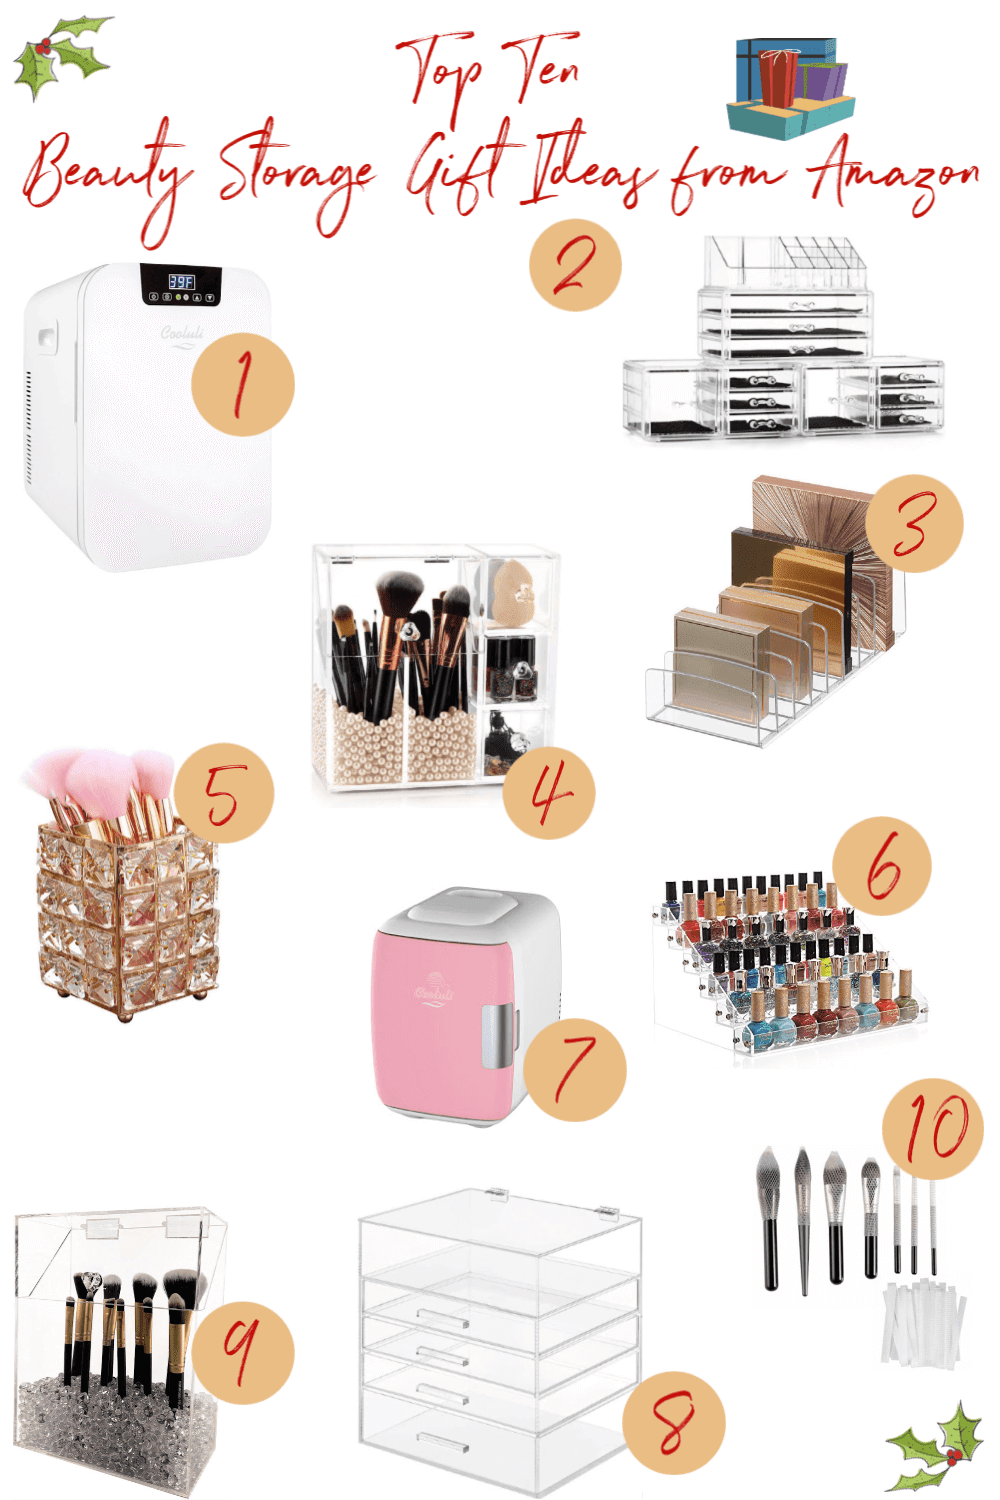 Top Ten Beauty Storage Gift Ideas from Amazon